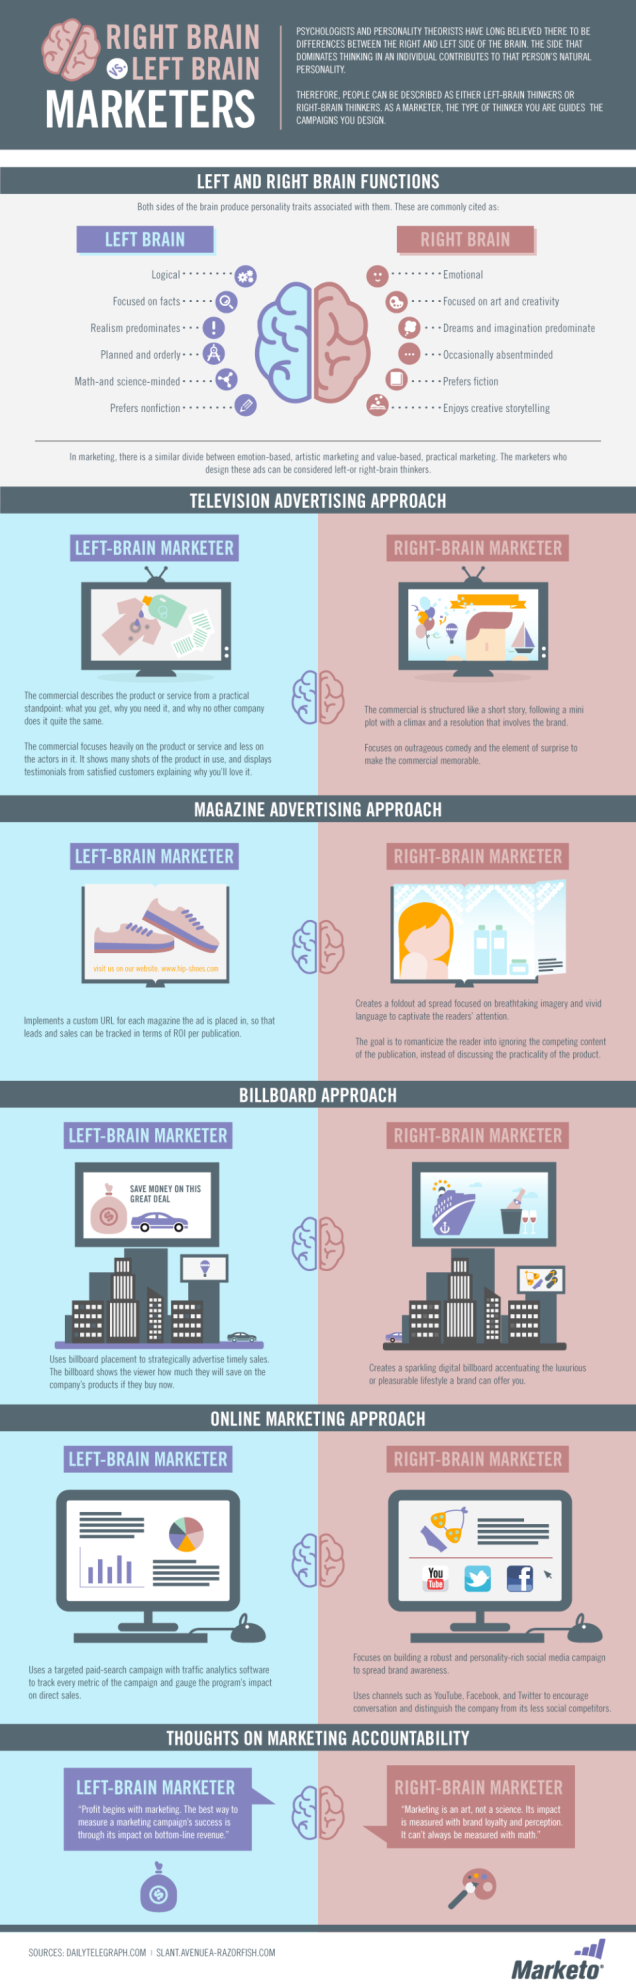 Marketer Brain infographic